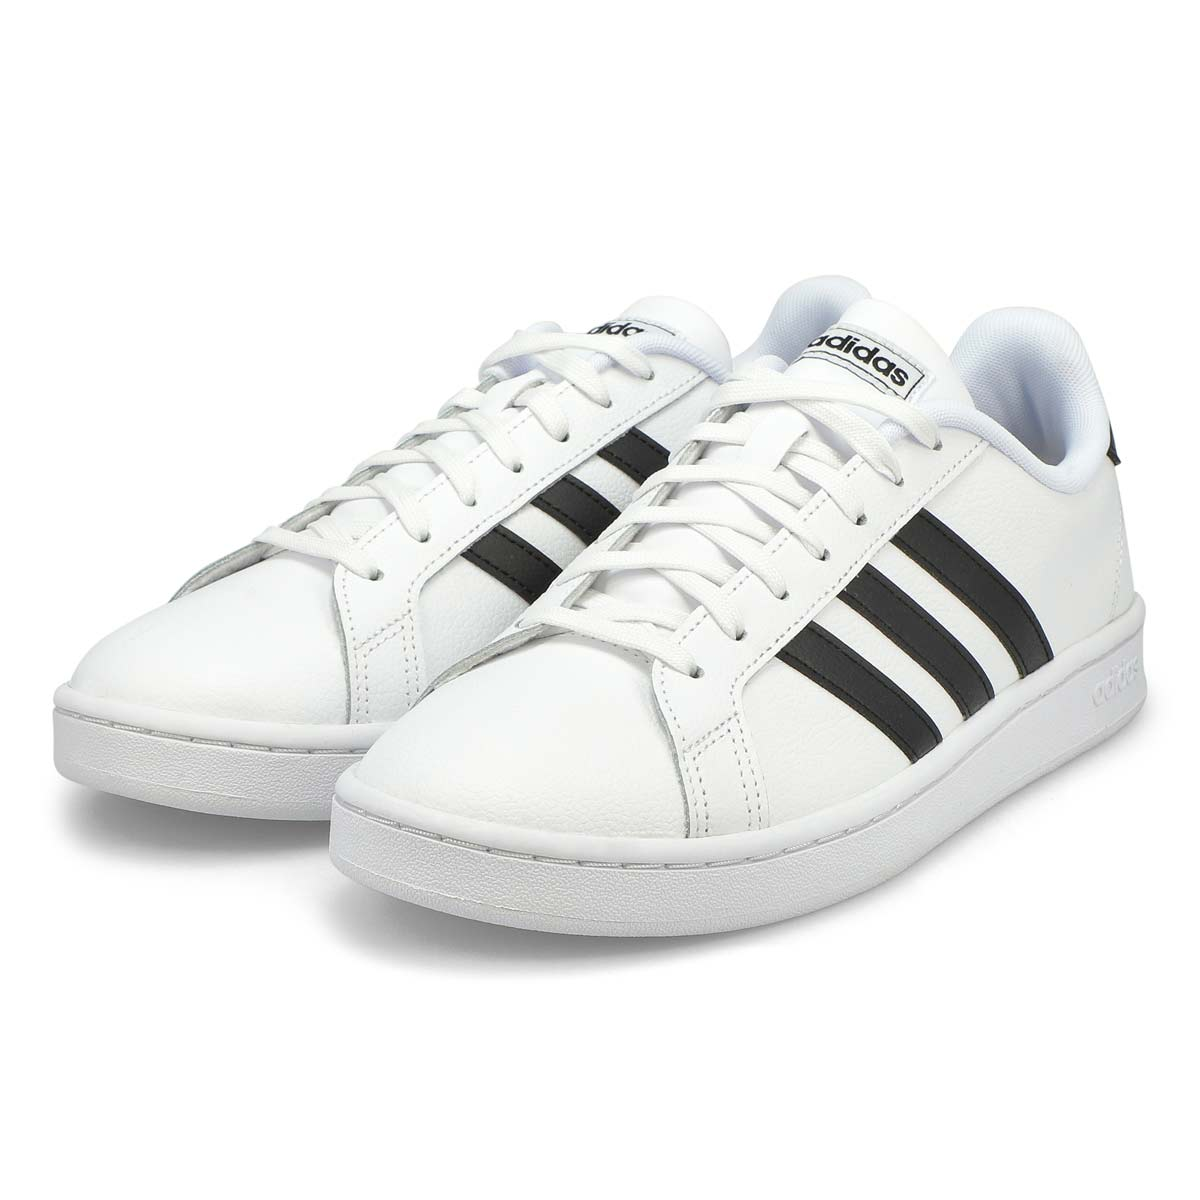 Mns Grand Court wht/blk sneaker